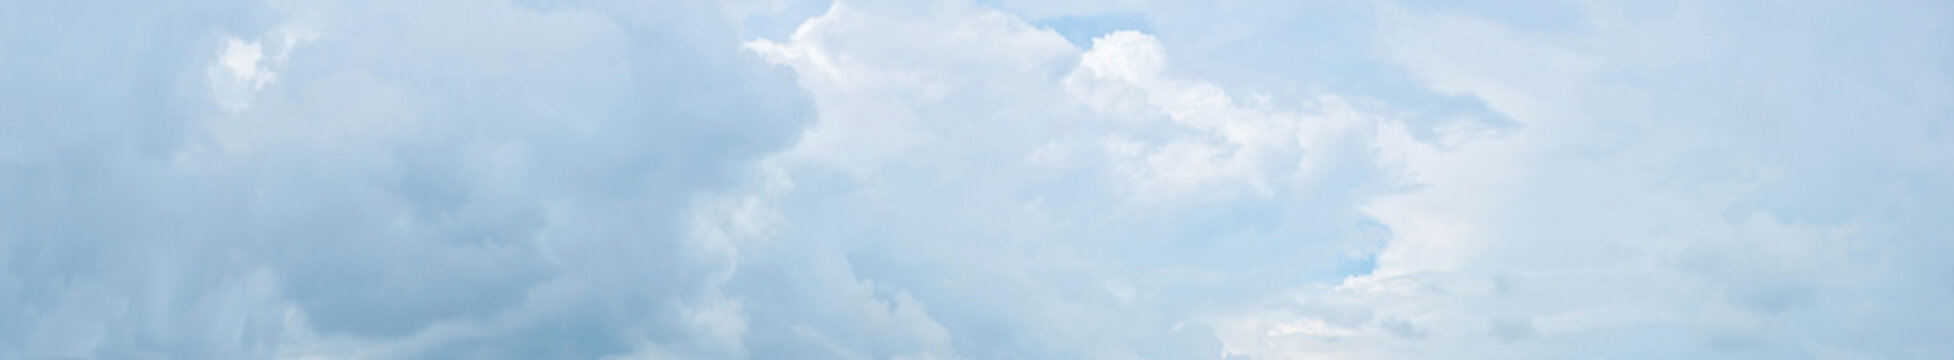 Panorama of cloudy sky with clouds.